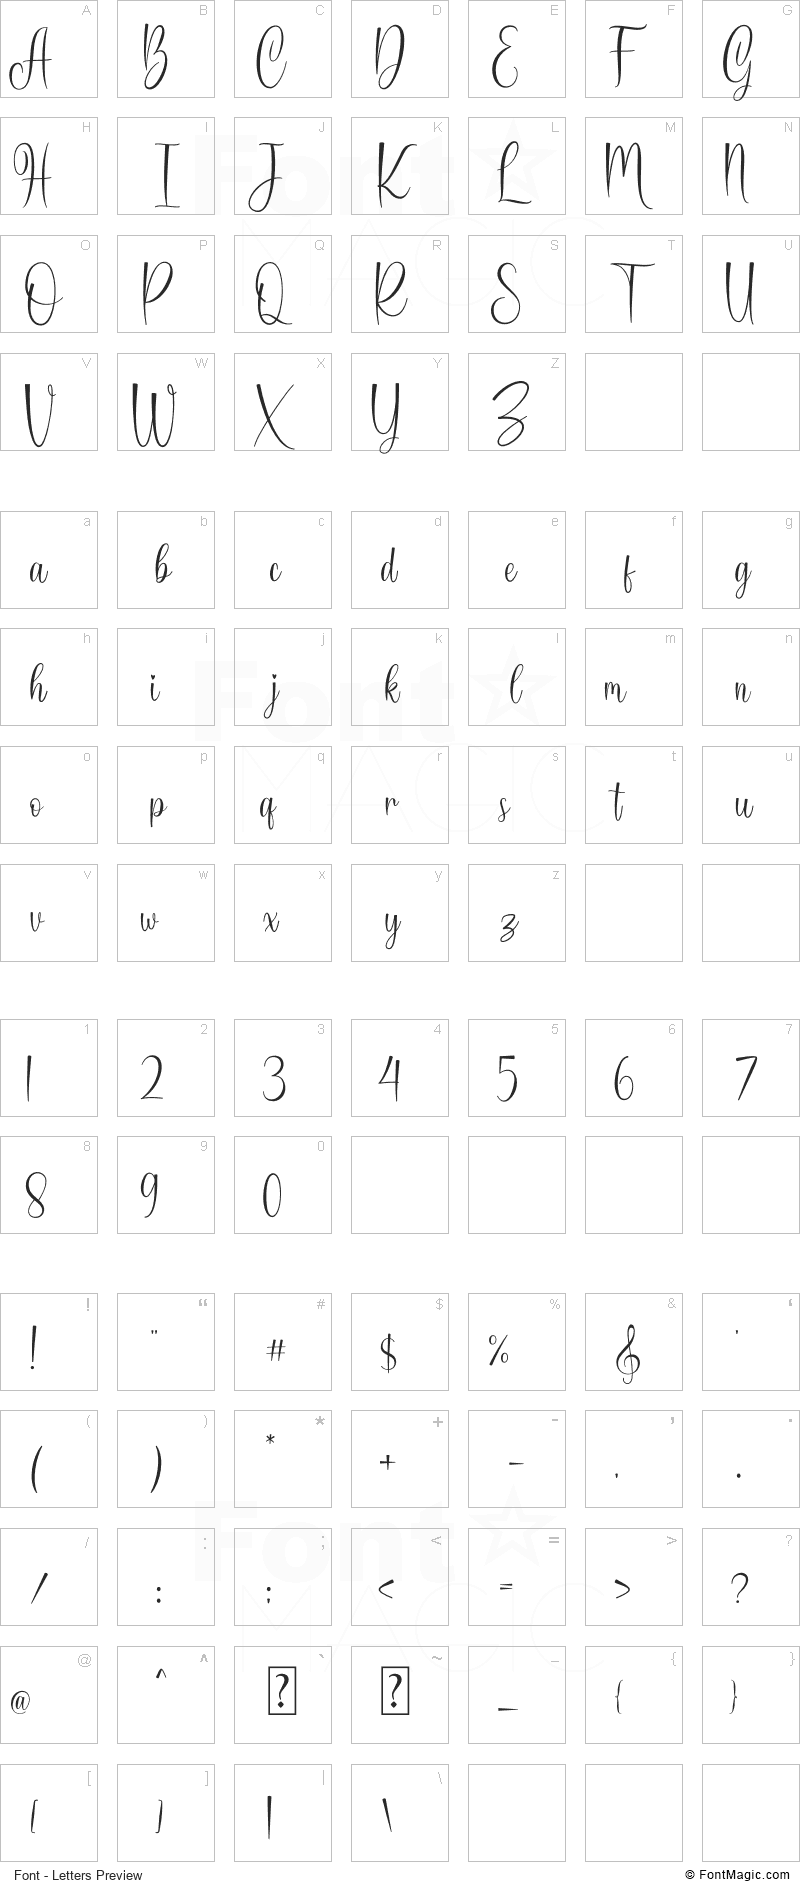 Harmonica Font - All Latters Preview Chart